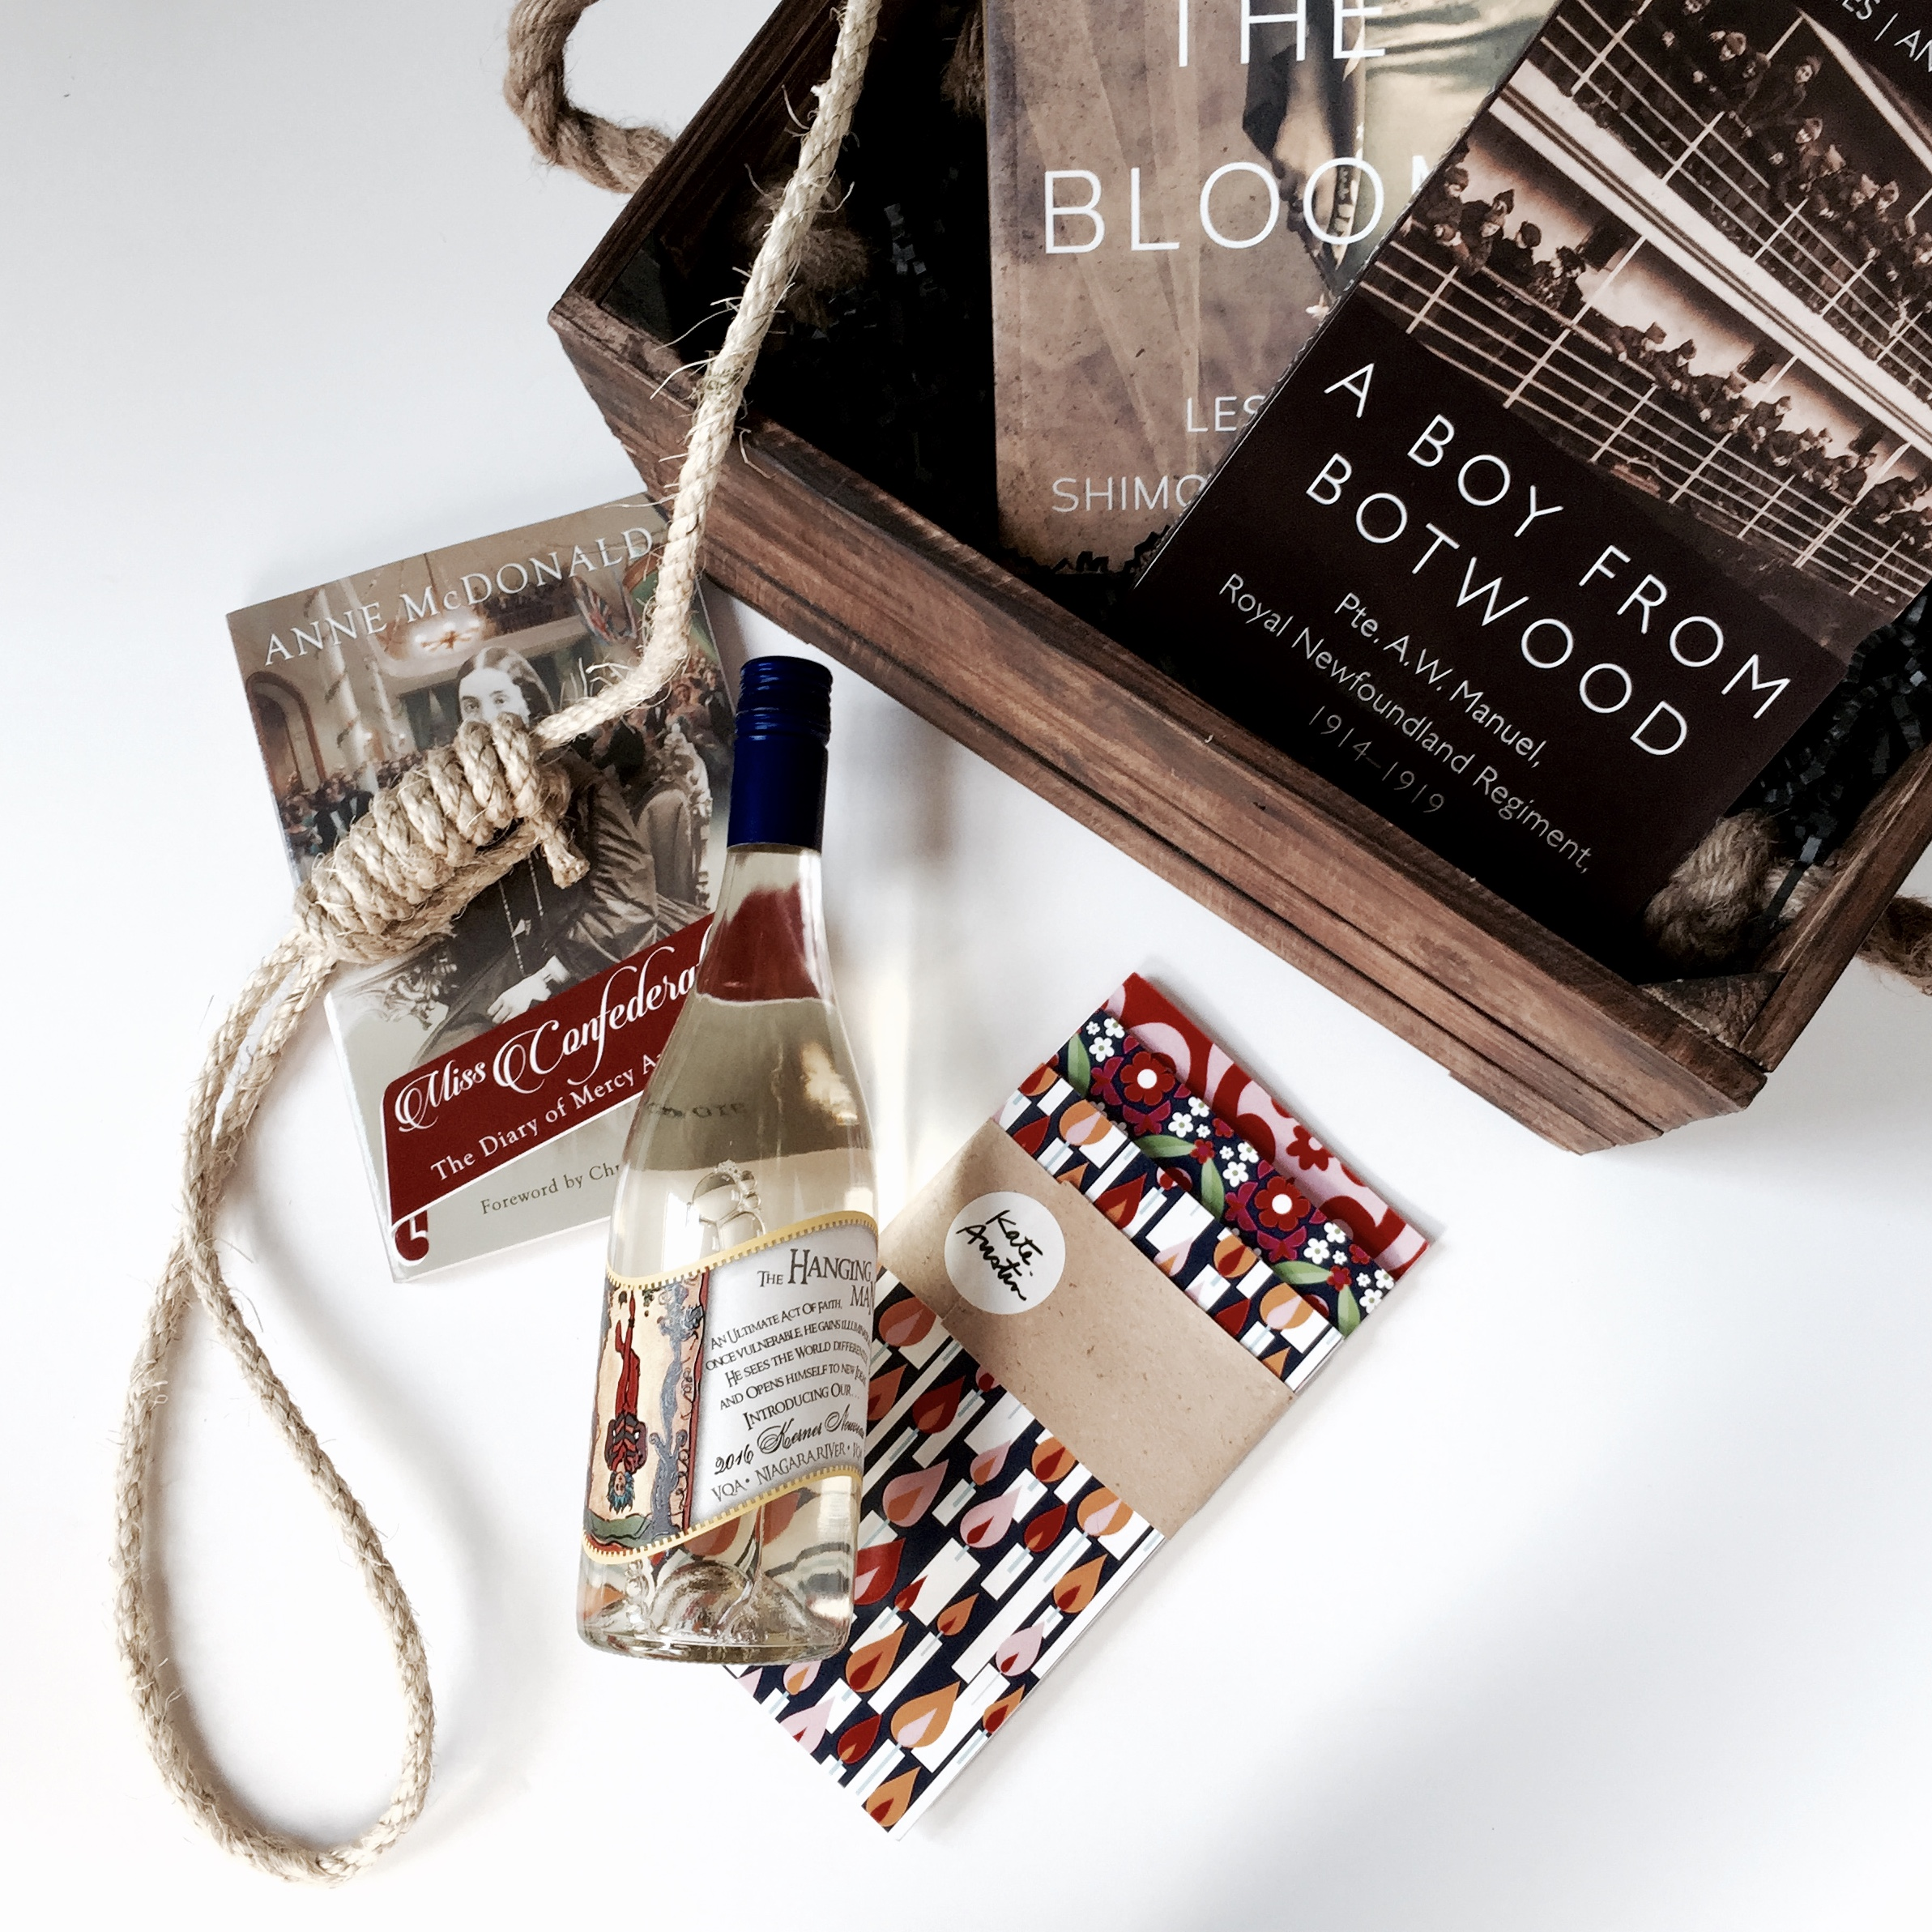 """The gift basket contained three notebooks with covers designed by local Toronto artist  Kate Austin ; a bottle of wine, """"The Hanging Man""""; and three books,  After the Bloom  by Leslie Shimotakahara,  A Boy from Botwood  by Brian Davies and Andrew Traficante, and Miss Confederation by Anne McDonald."""